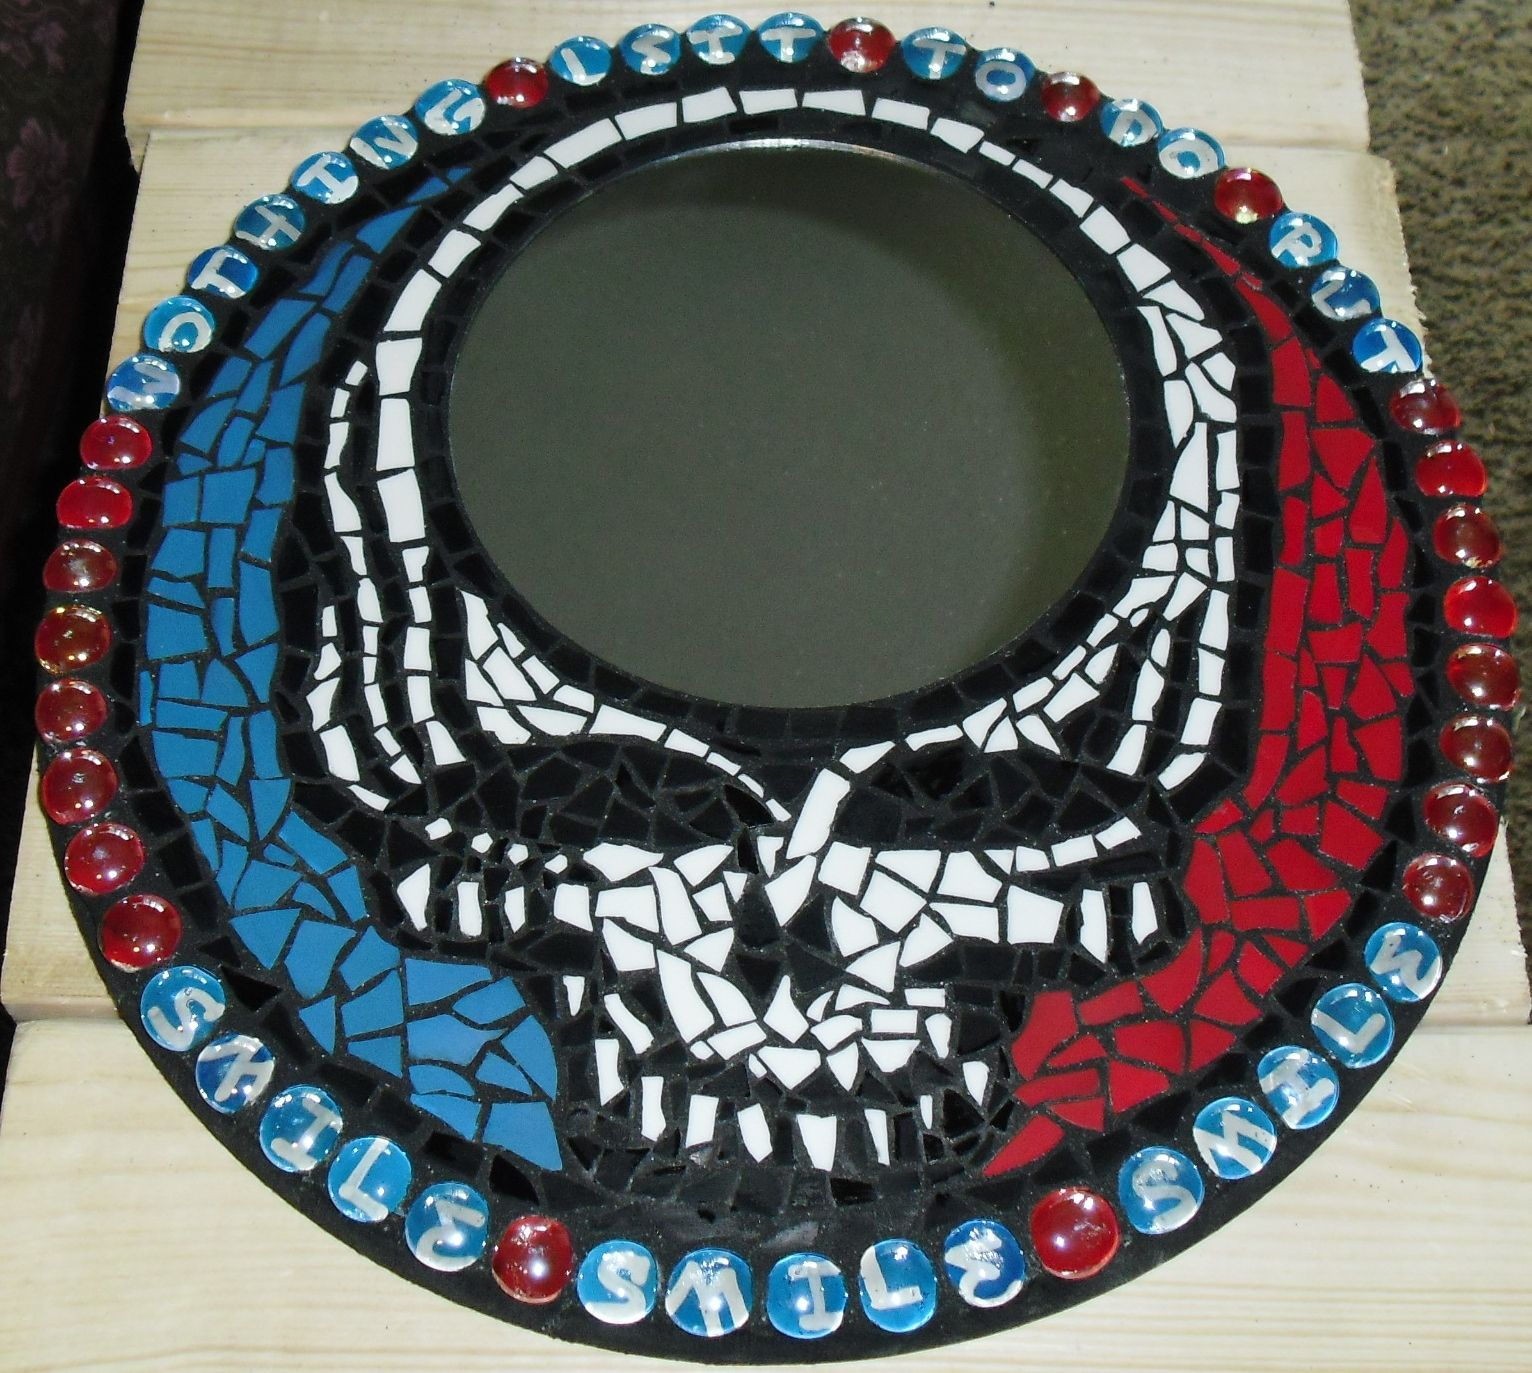 Grateful Dead Stealie Wall Mirror Mosaic With Nothing Left To